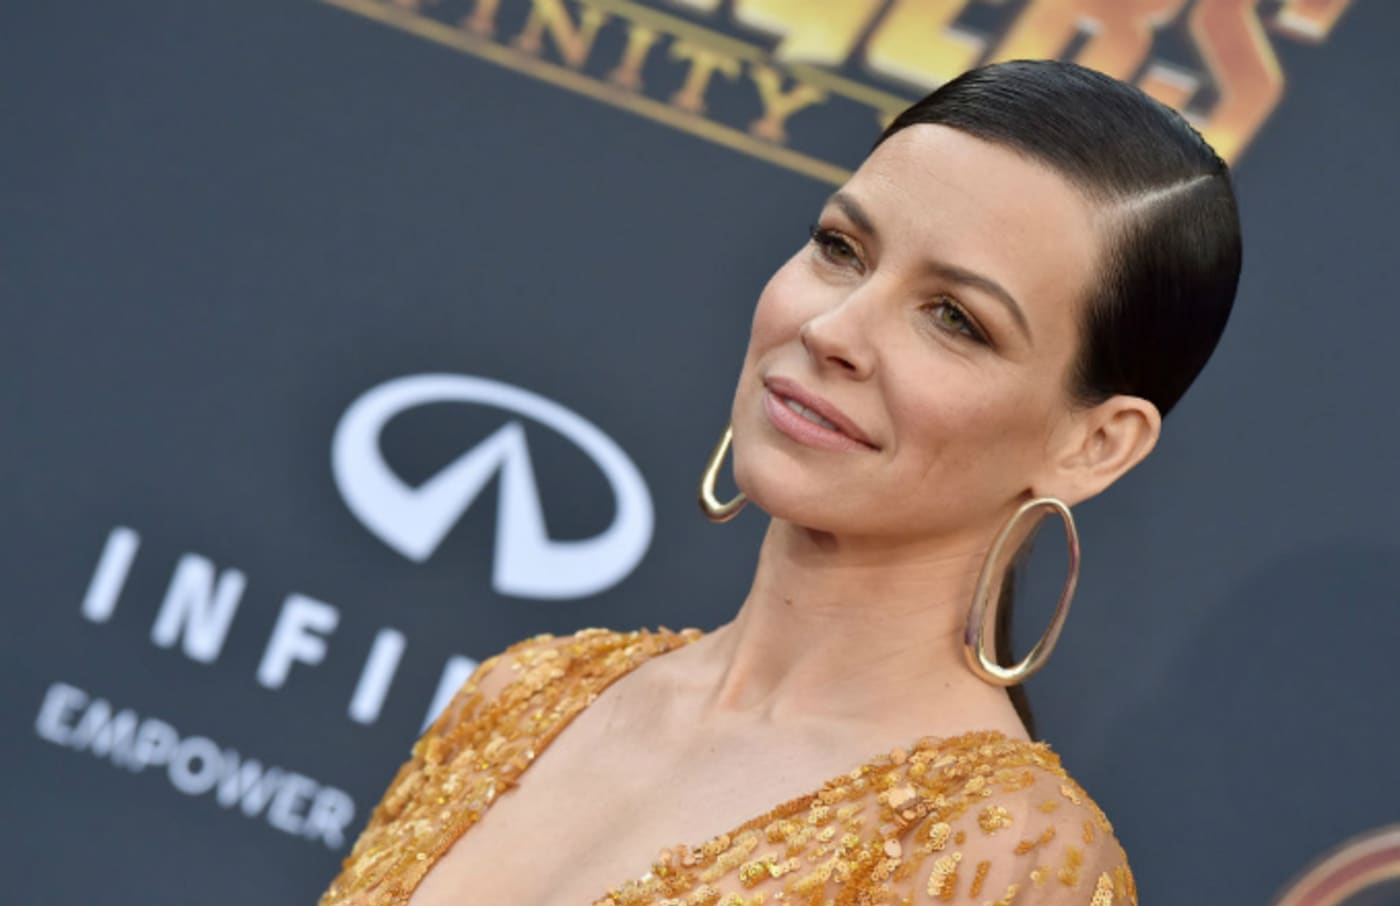 Lilly evangeline who is Evangeline Lilly